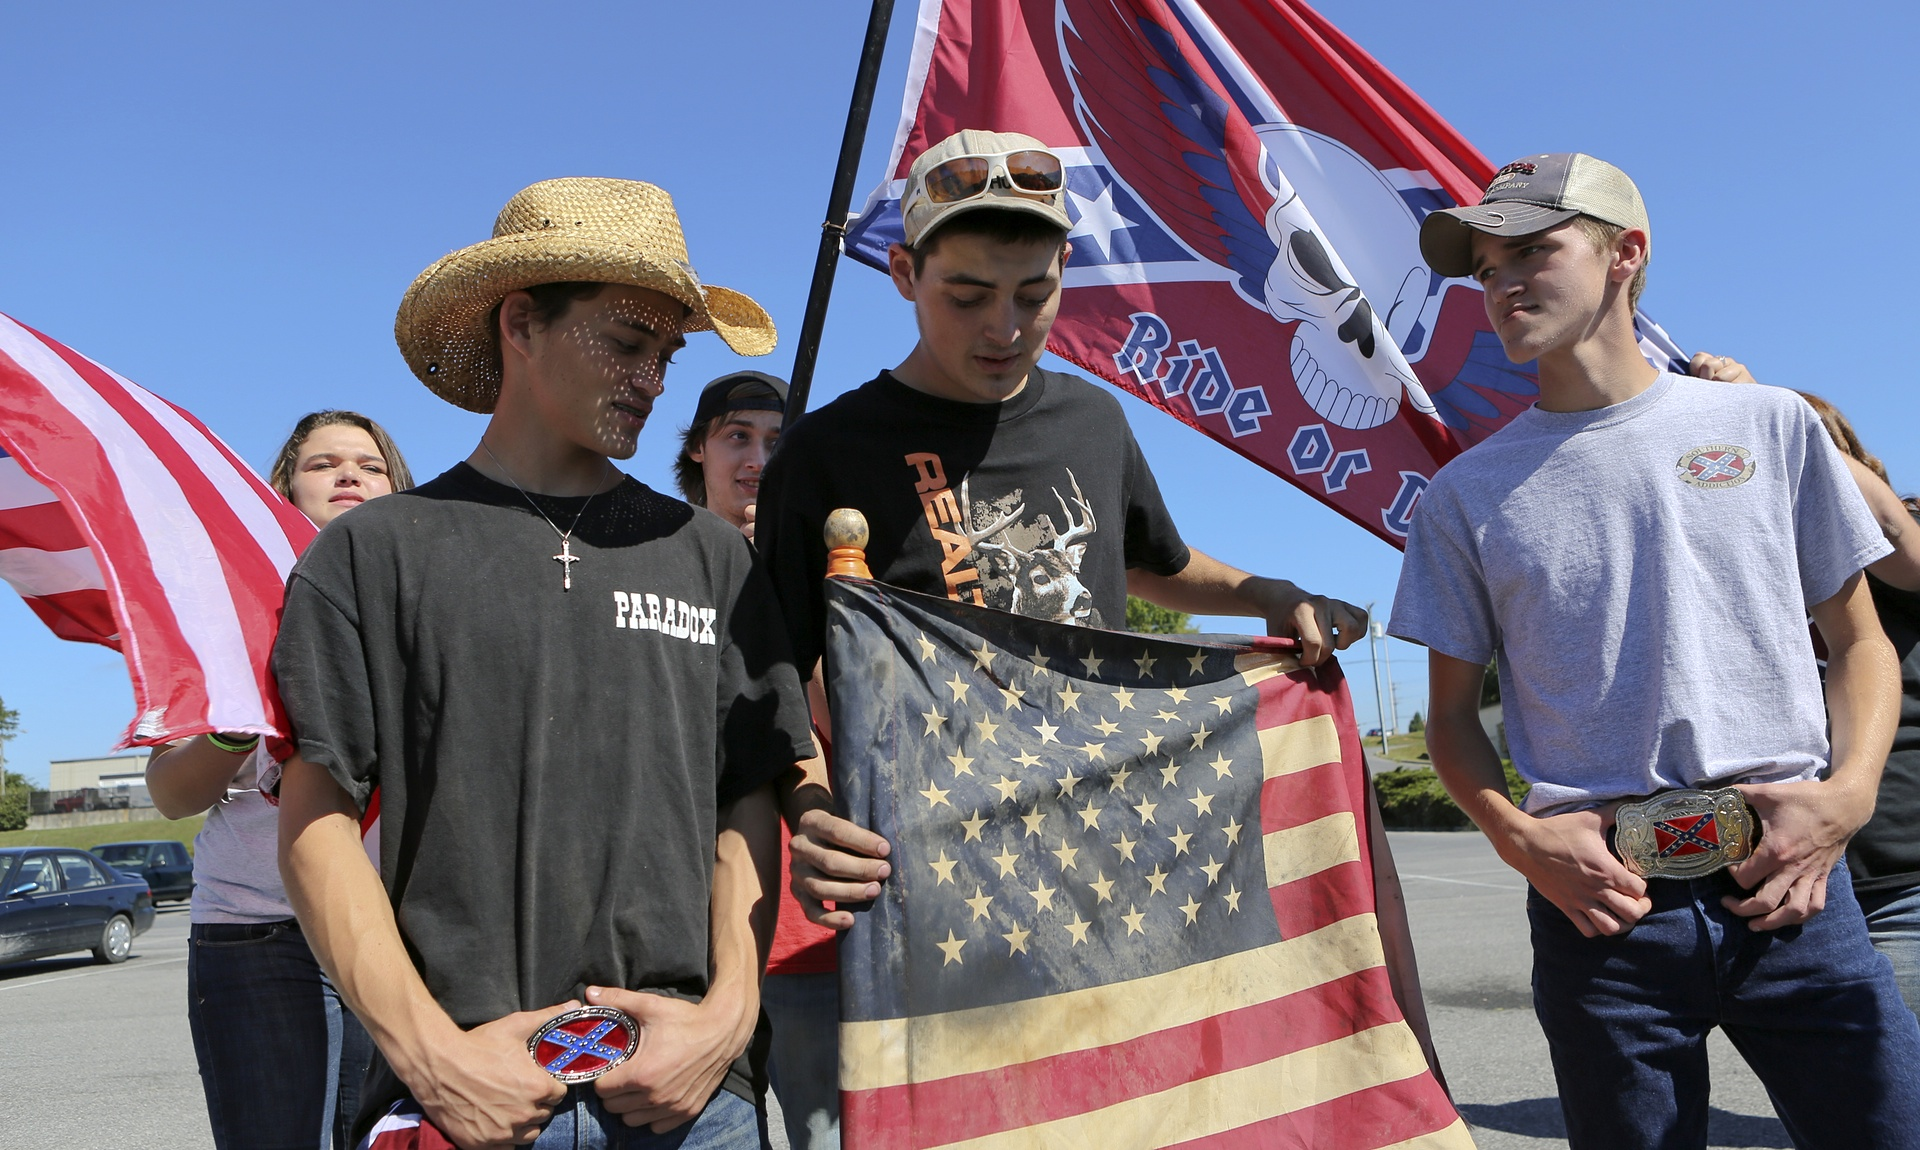 High School Students Protest Over Confederate Flag Ban